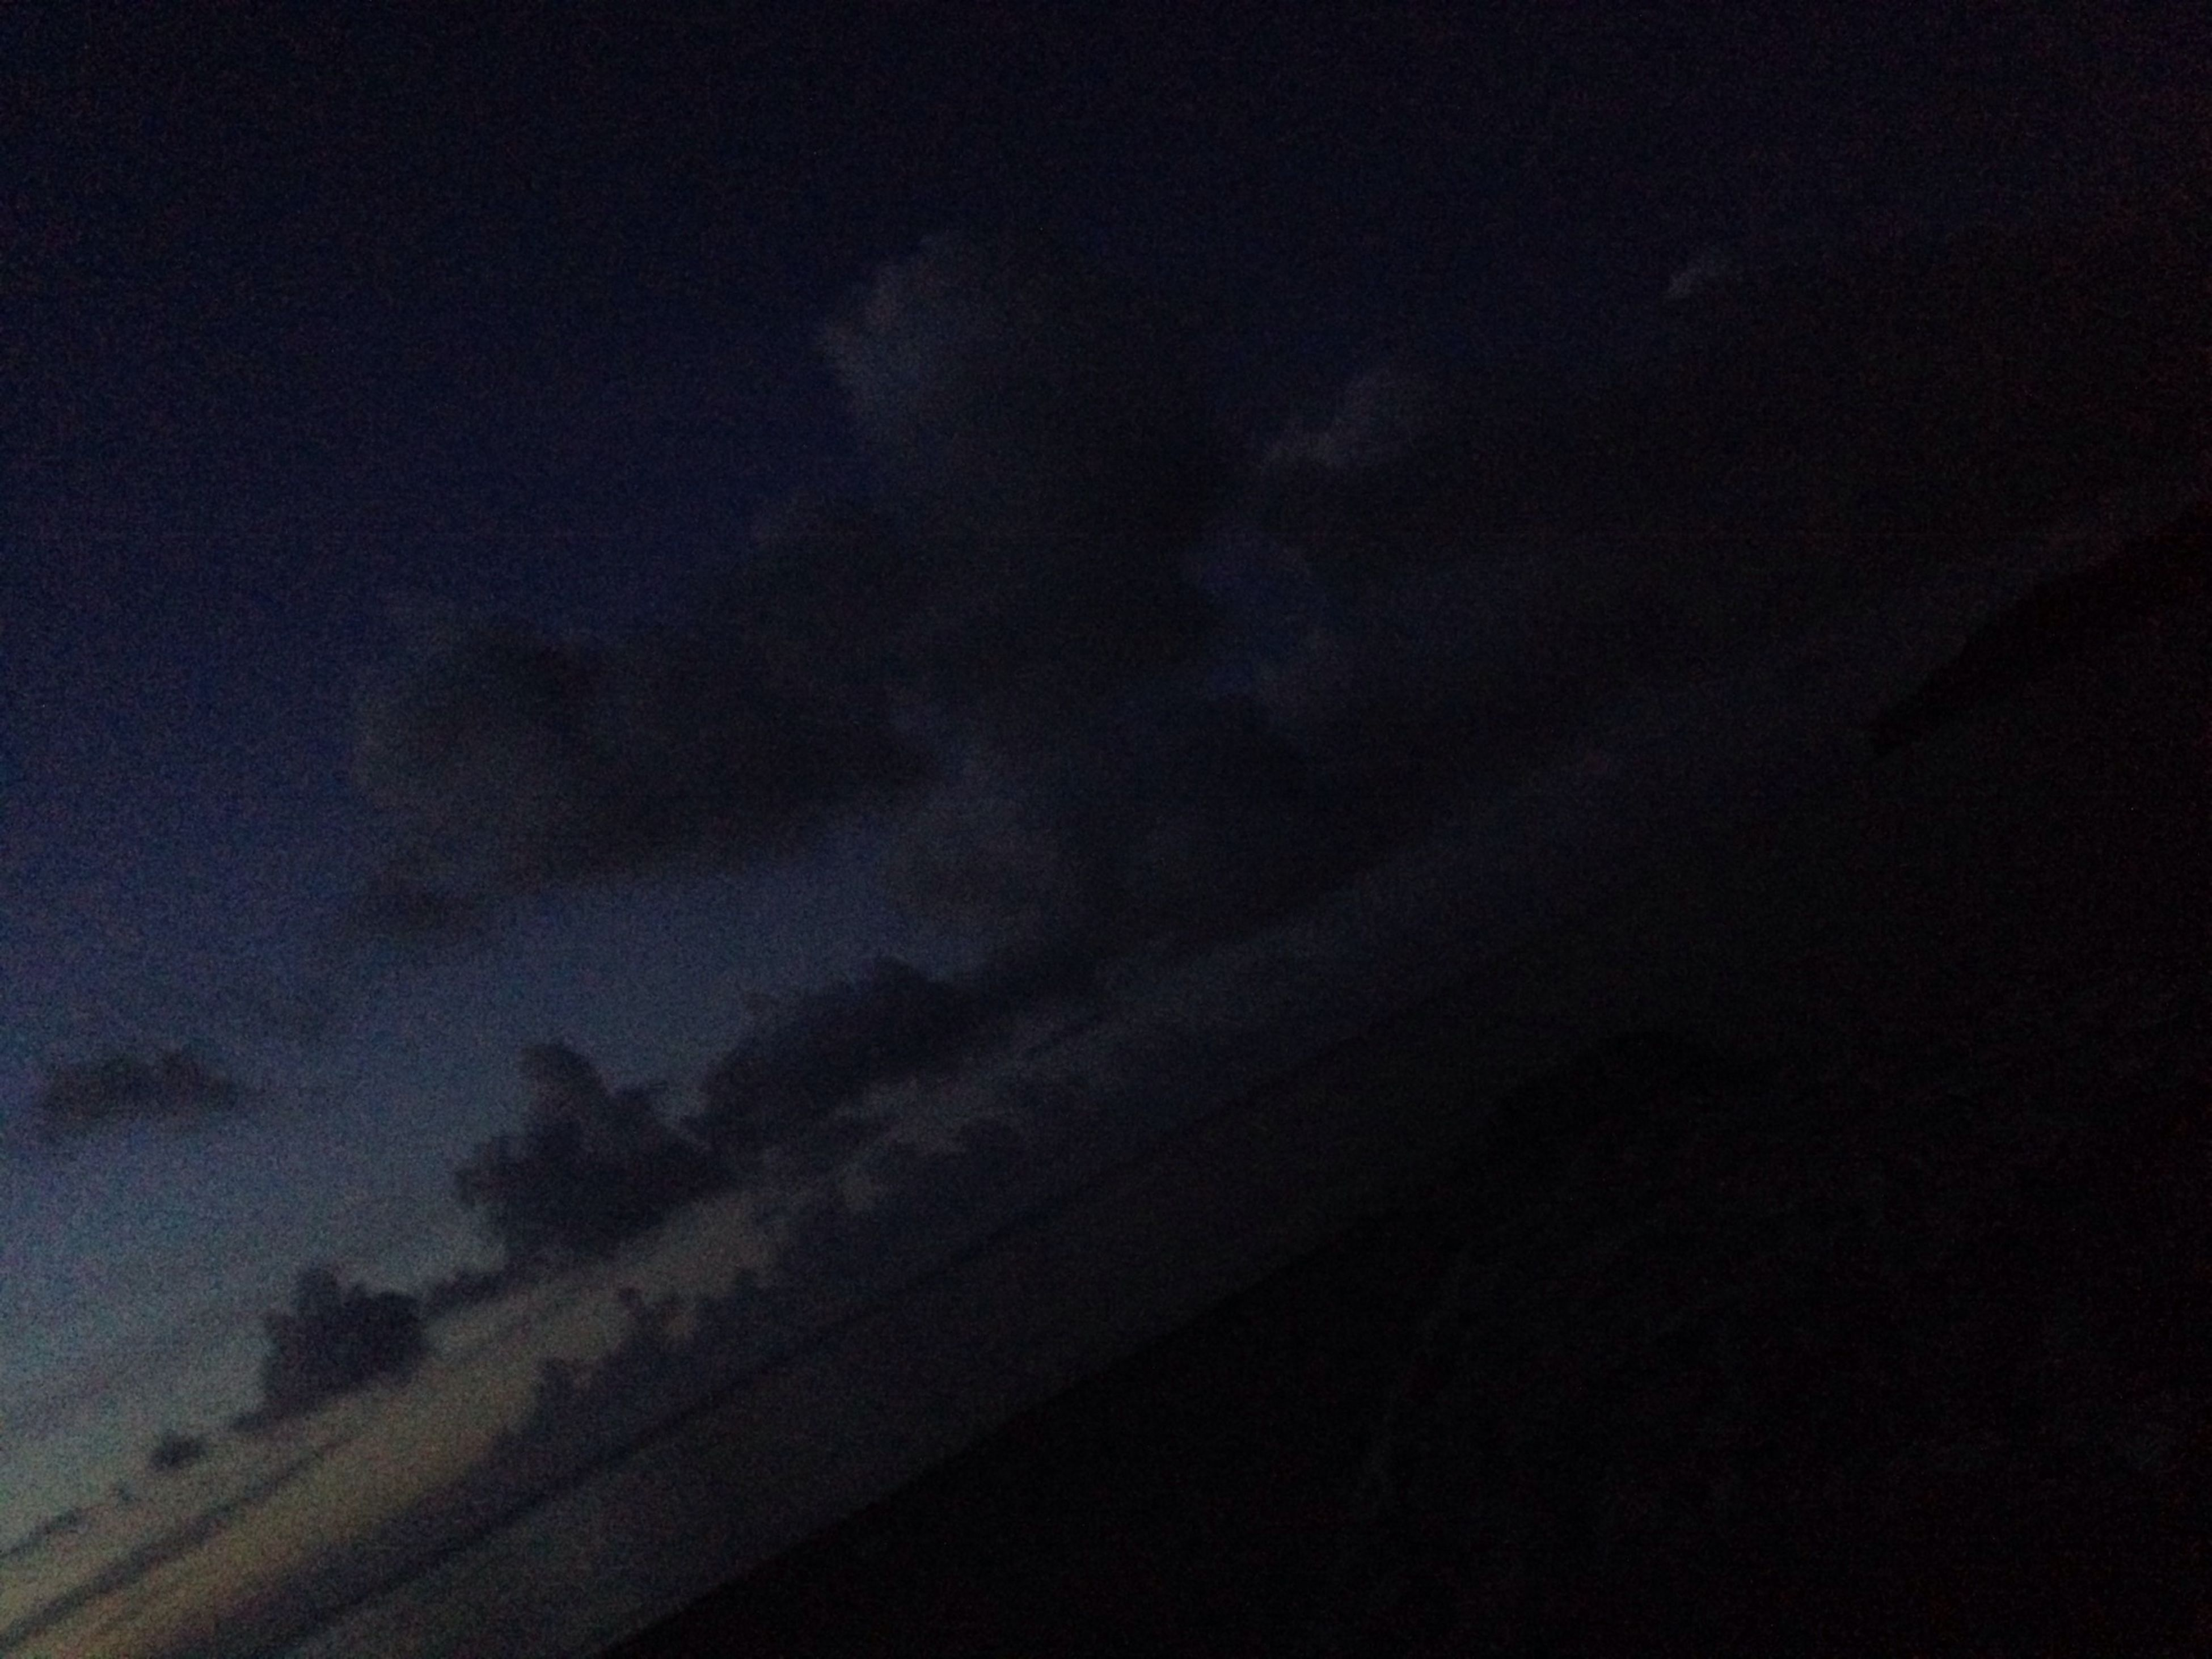 sky, low angle view, night, cloud - sky, beauty in nature, scenics, dark, tranquility, nature, silhouette, cloudy, tranquil scene, weather, dusk, overcast, cloudscape, copy space, idyllic, outdoors, no people